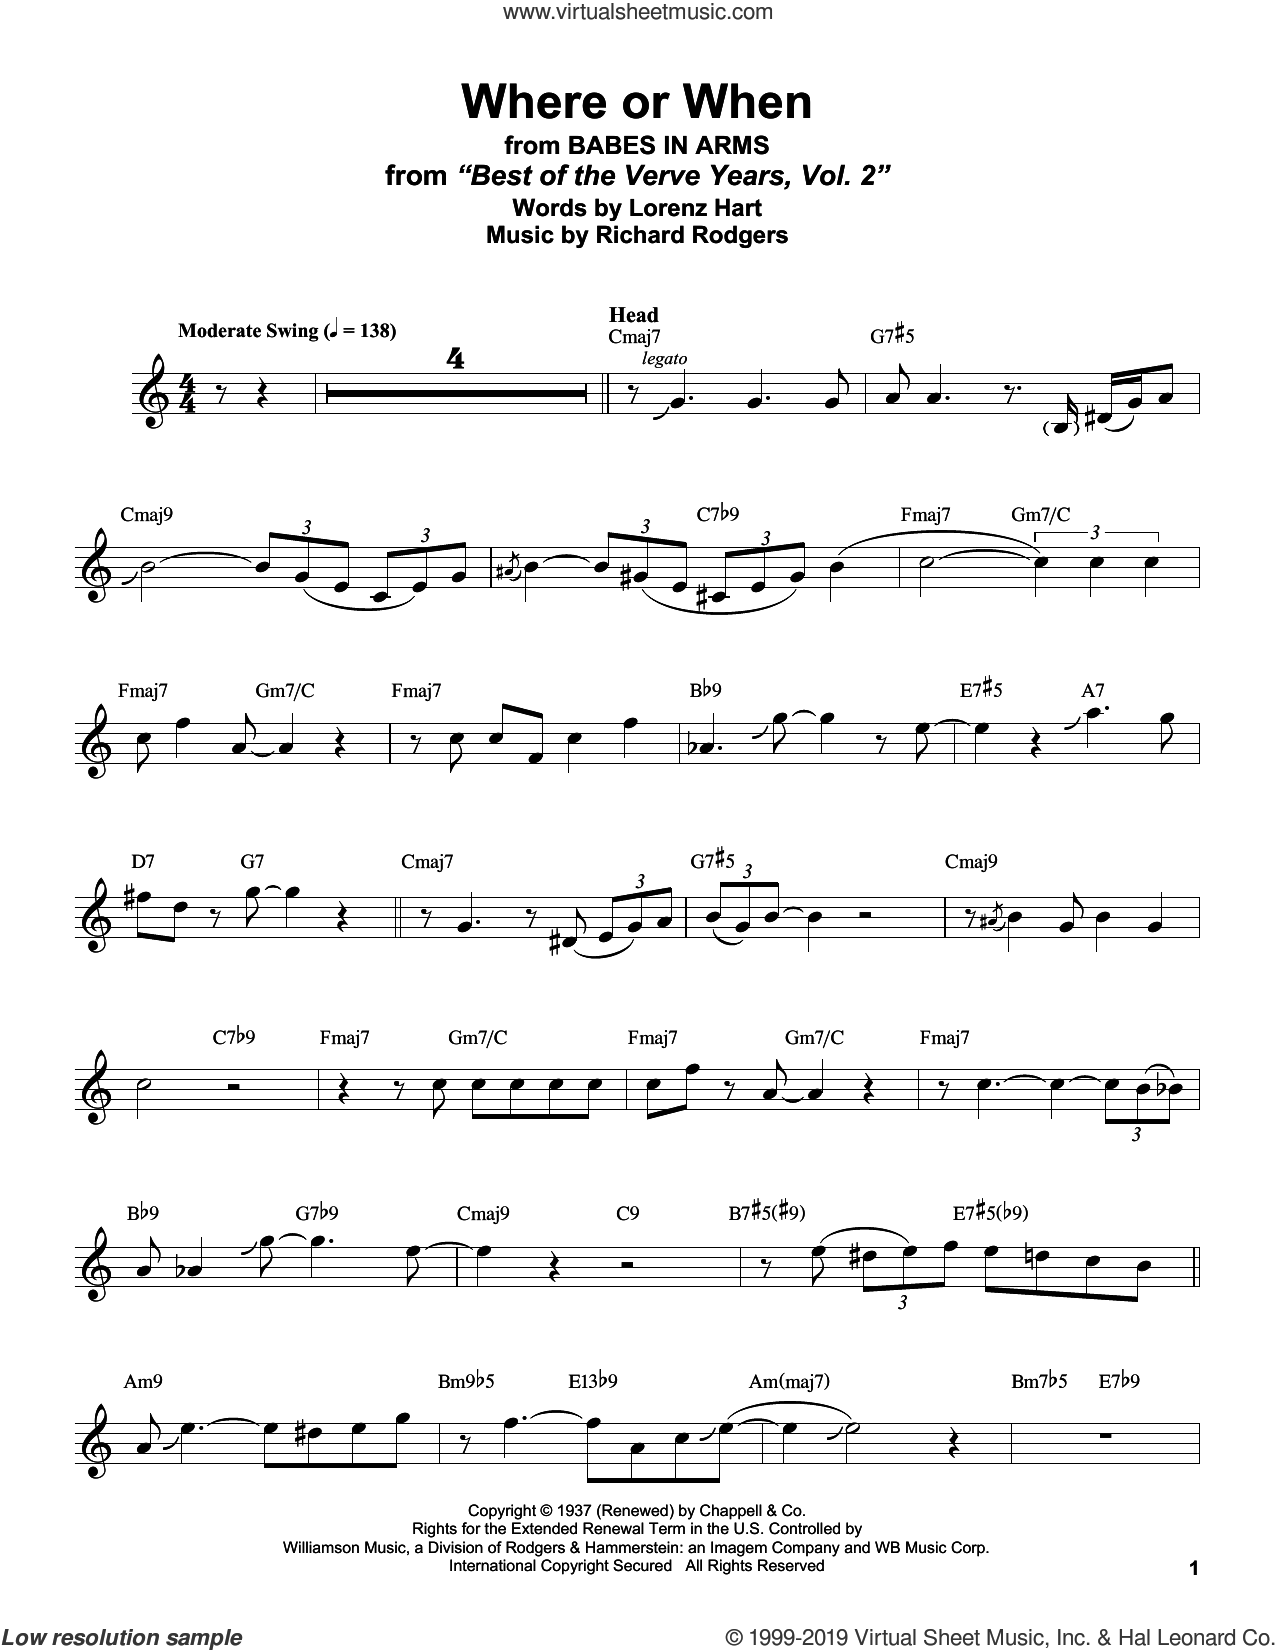 Where Or When (from Babes In Arms) sheet music for alto saxophone (transcription) by Stan Getz, Lorenz Hart and Richard Rodgers, intermediate skill level